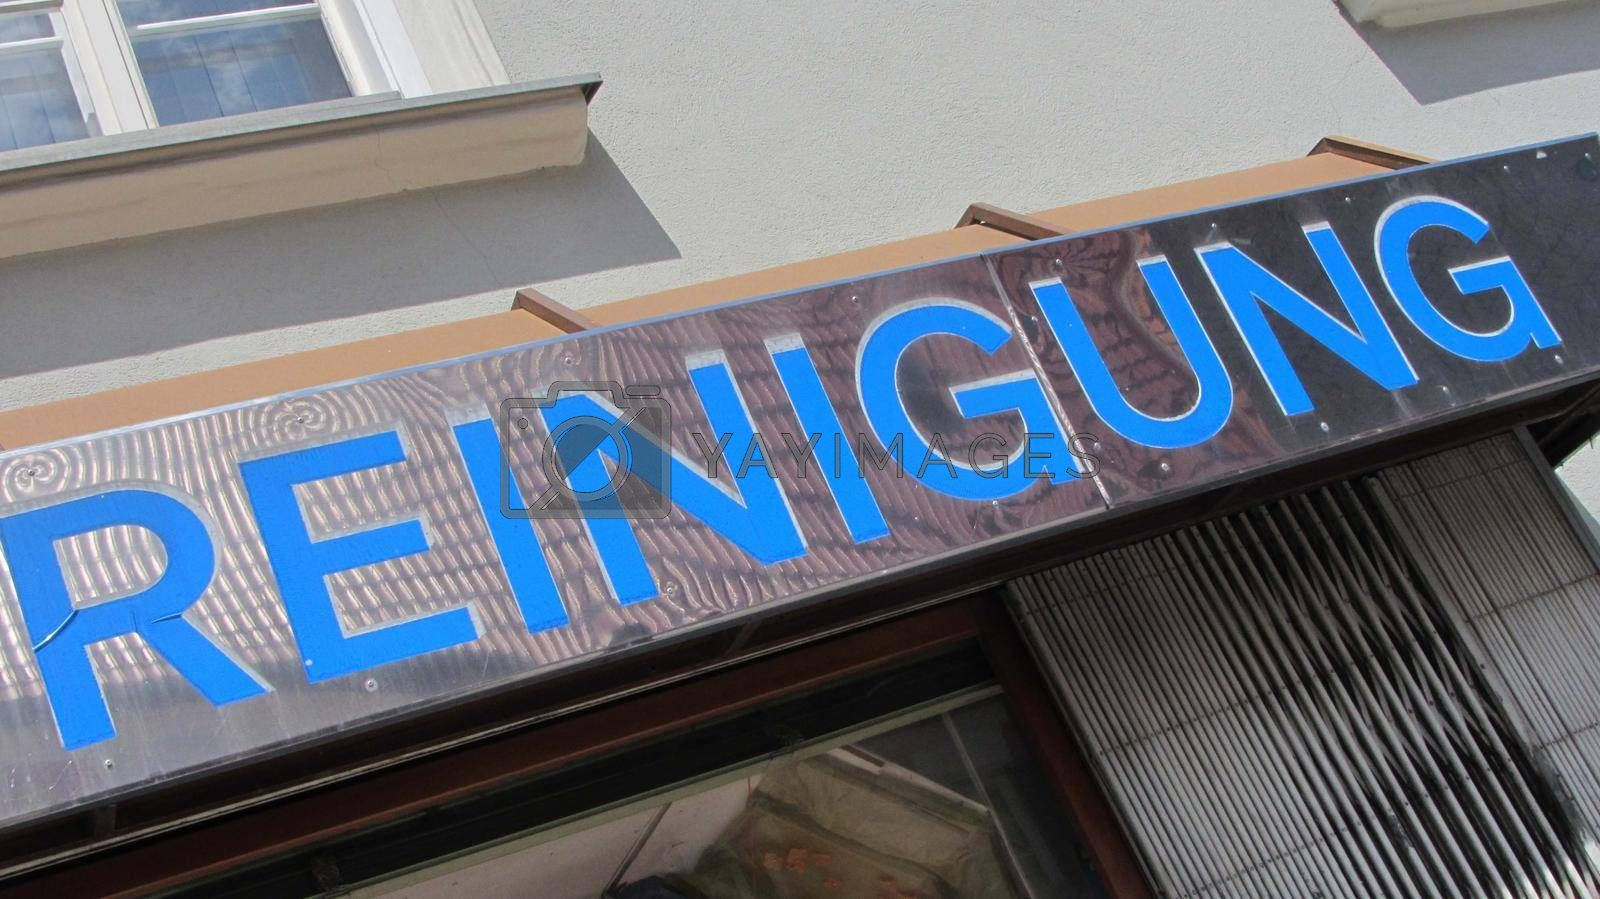 a sign for professional cleaning and hygienic service in german (Reinigung)